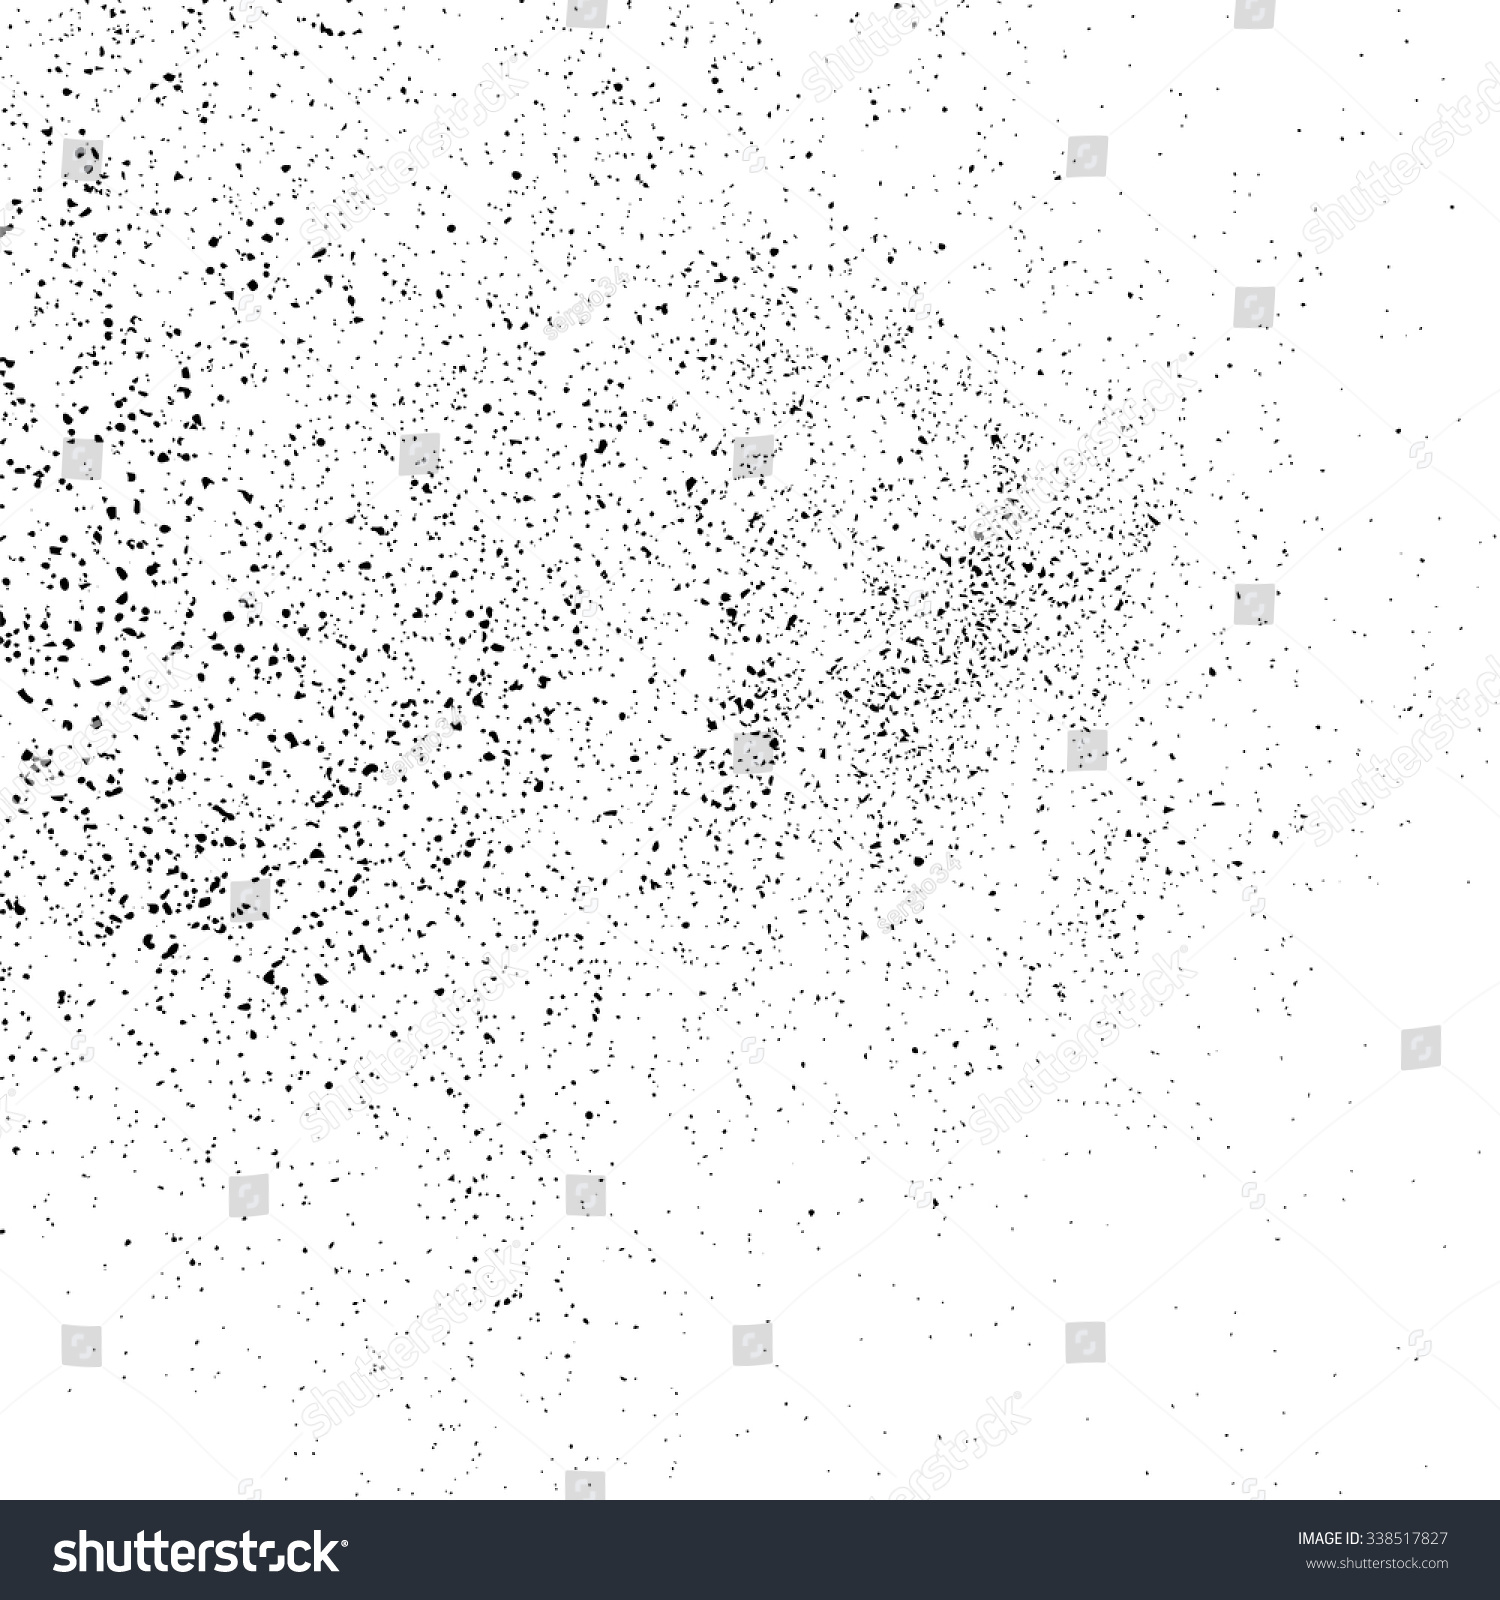 Grainy abstract  texture on a white background. Design element. Vector illustration,eps 10. #338517827